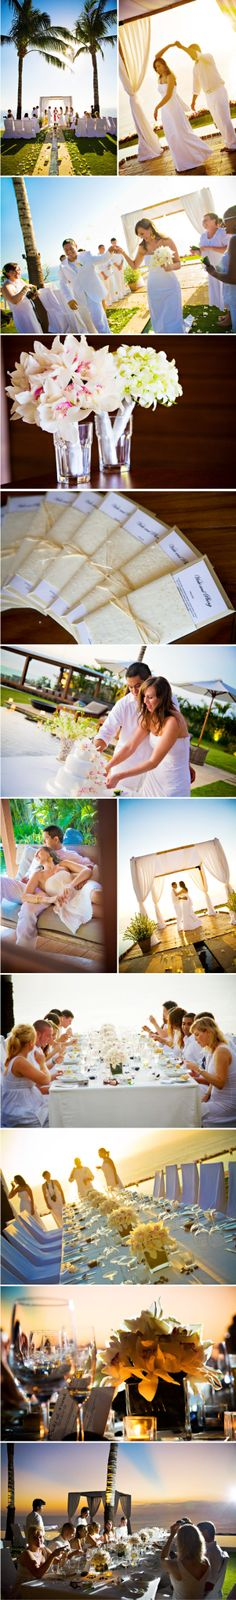 Real Wedding in Bali